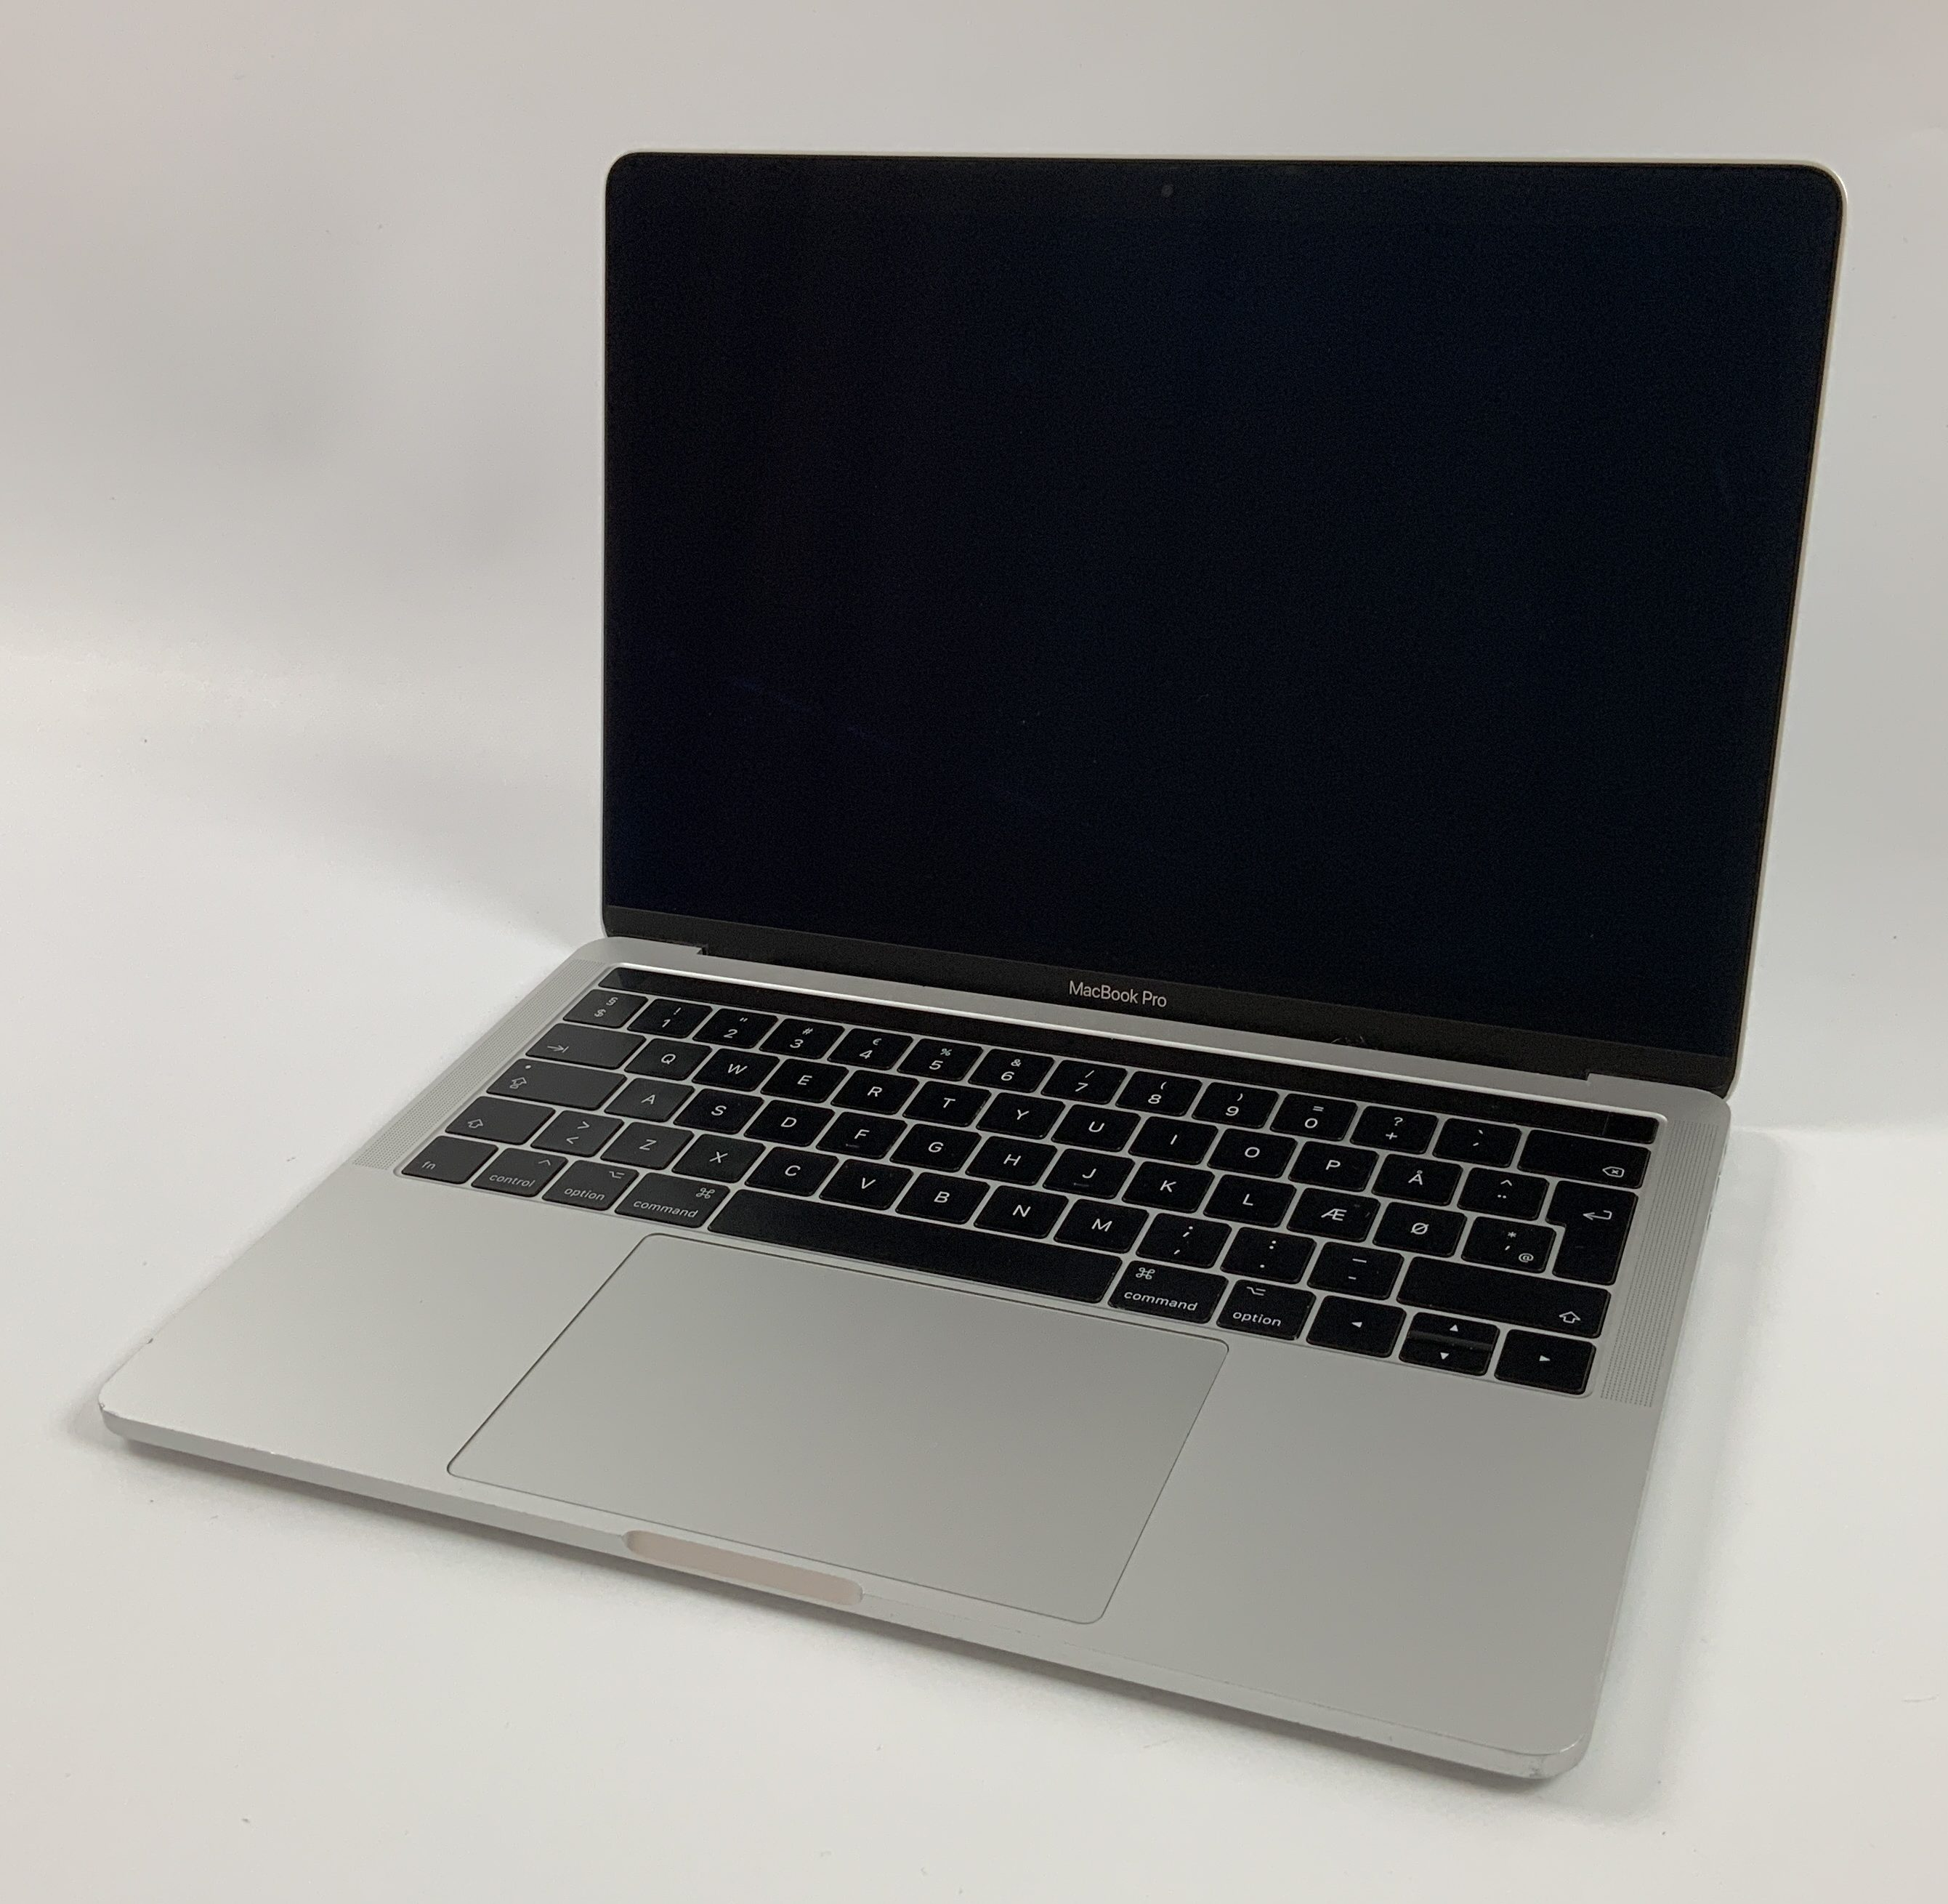 "MacBook Pro 13"" 4TBT Mid 2017 (Intel Core i5 3.1 GHz 8 GB RAM 256 GB SSD), Silver, Intel Core i5 3.1 GHz, 8 GB RAM, 256 GB SSD, immagine 1"